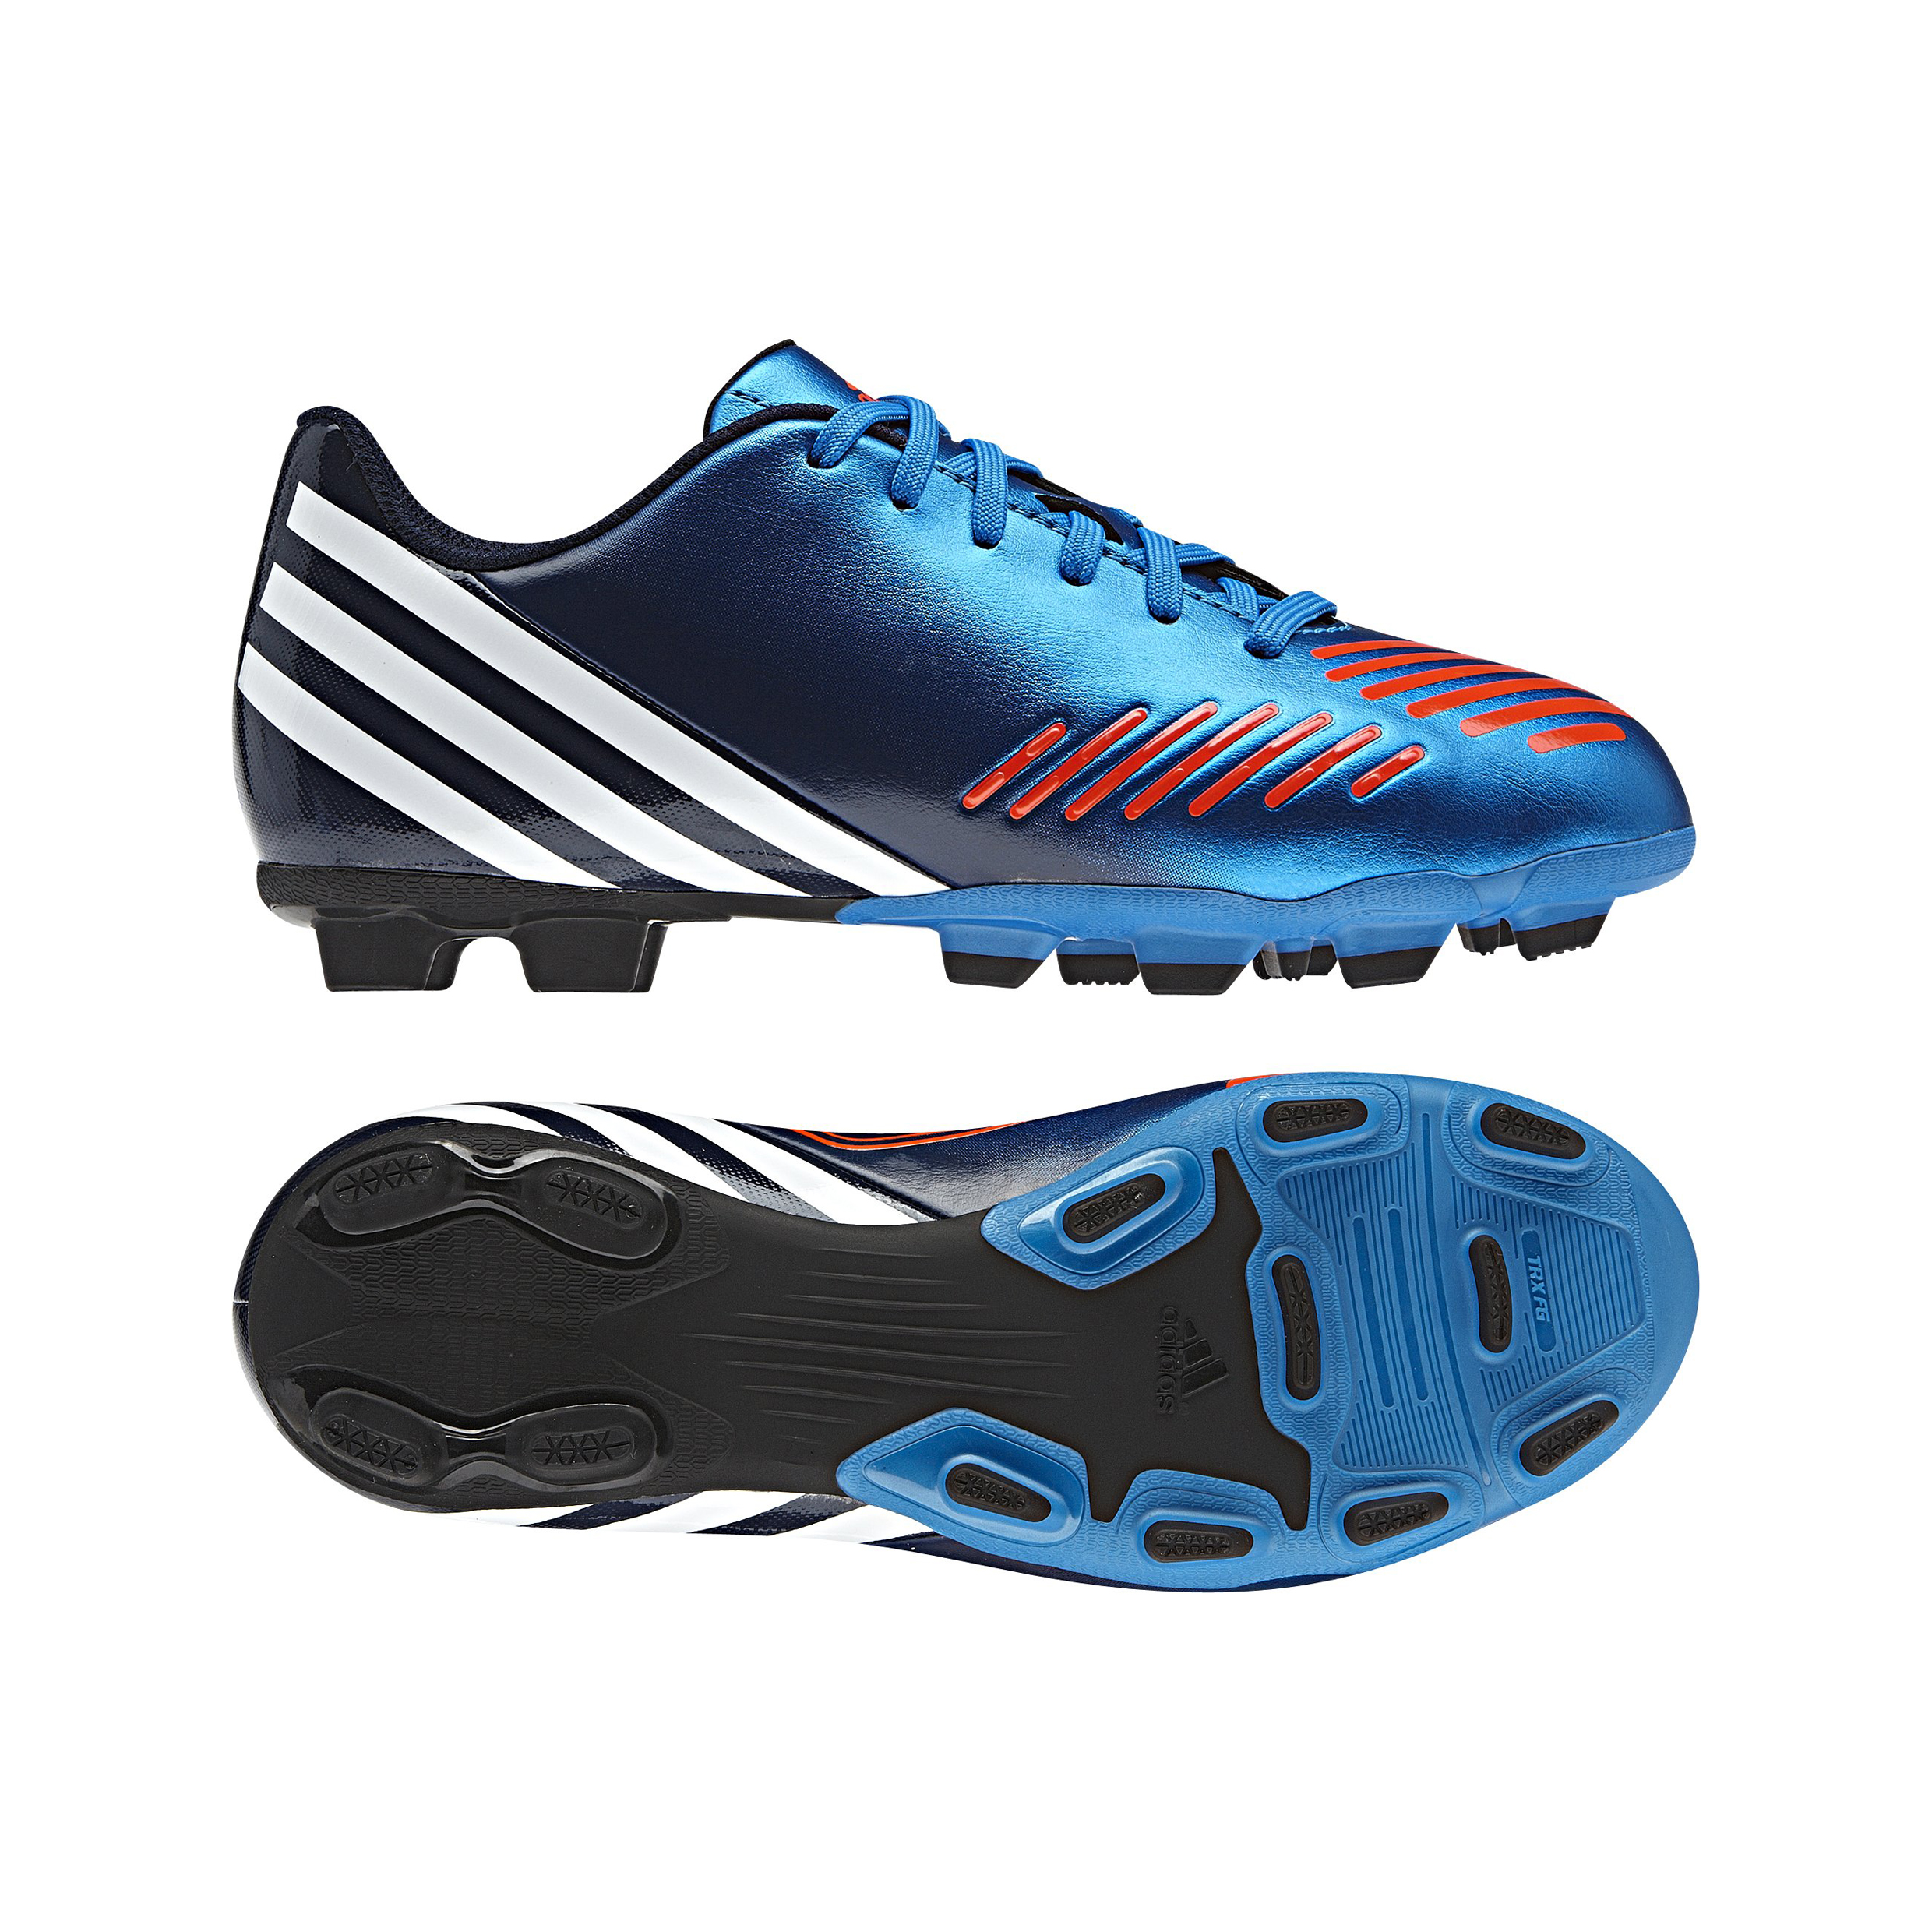 Adidas Predator LZ TRX Frim Ground Football Boots - Bright Blue/Running White/Infrared - Kids